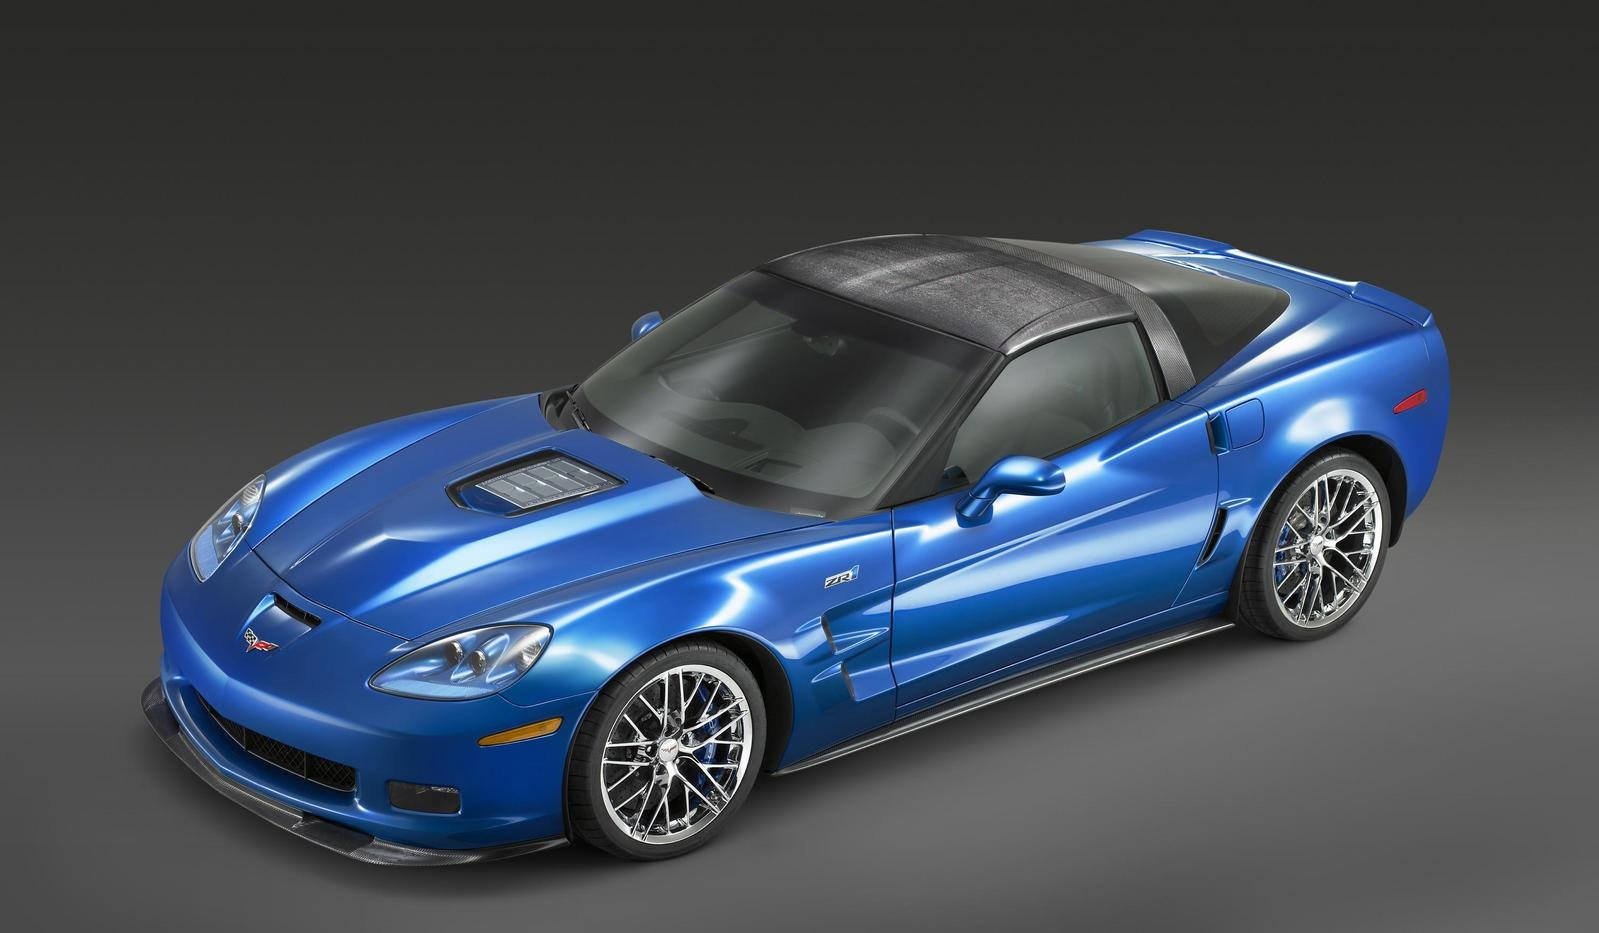 Charmant 2009 Chevrolet Corvette ZR1 Review   Top Speed. »